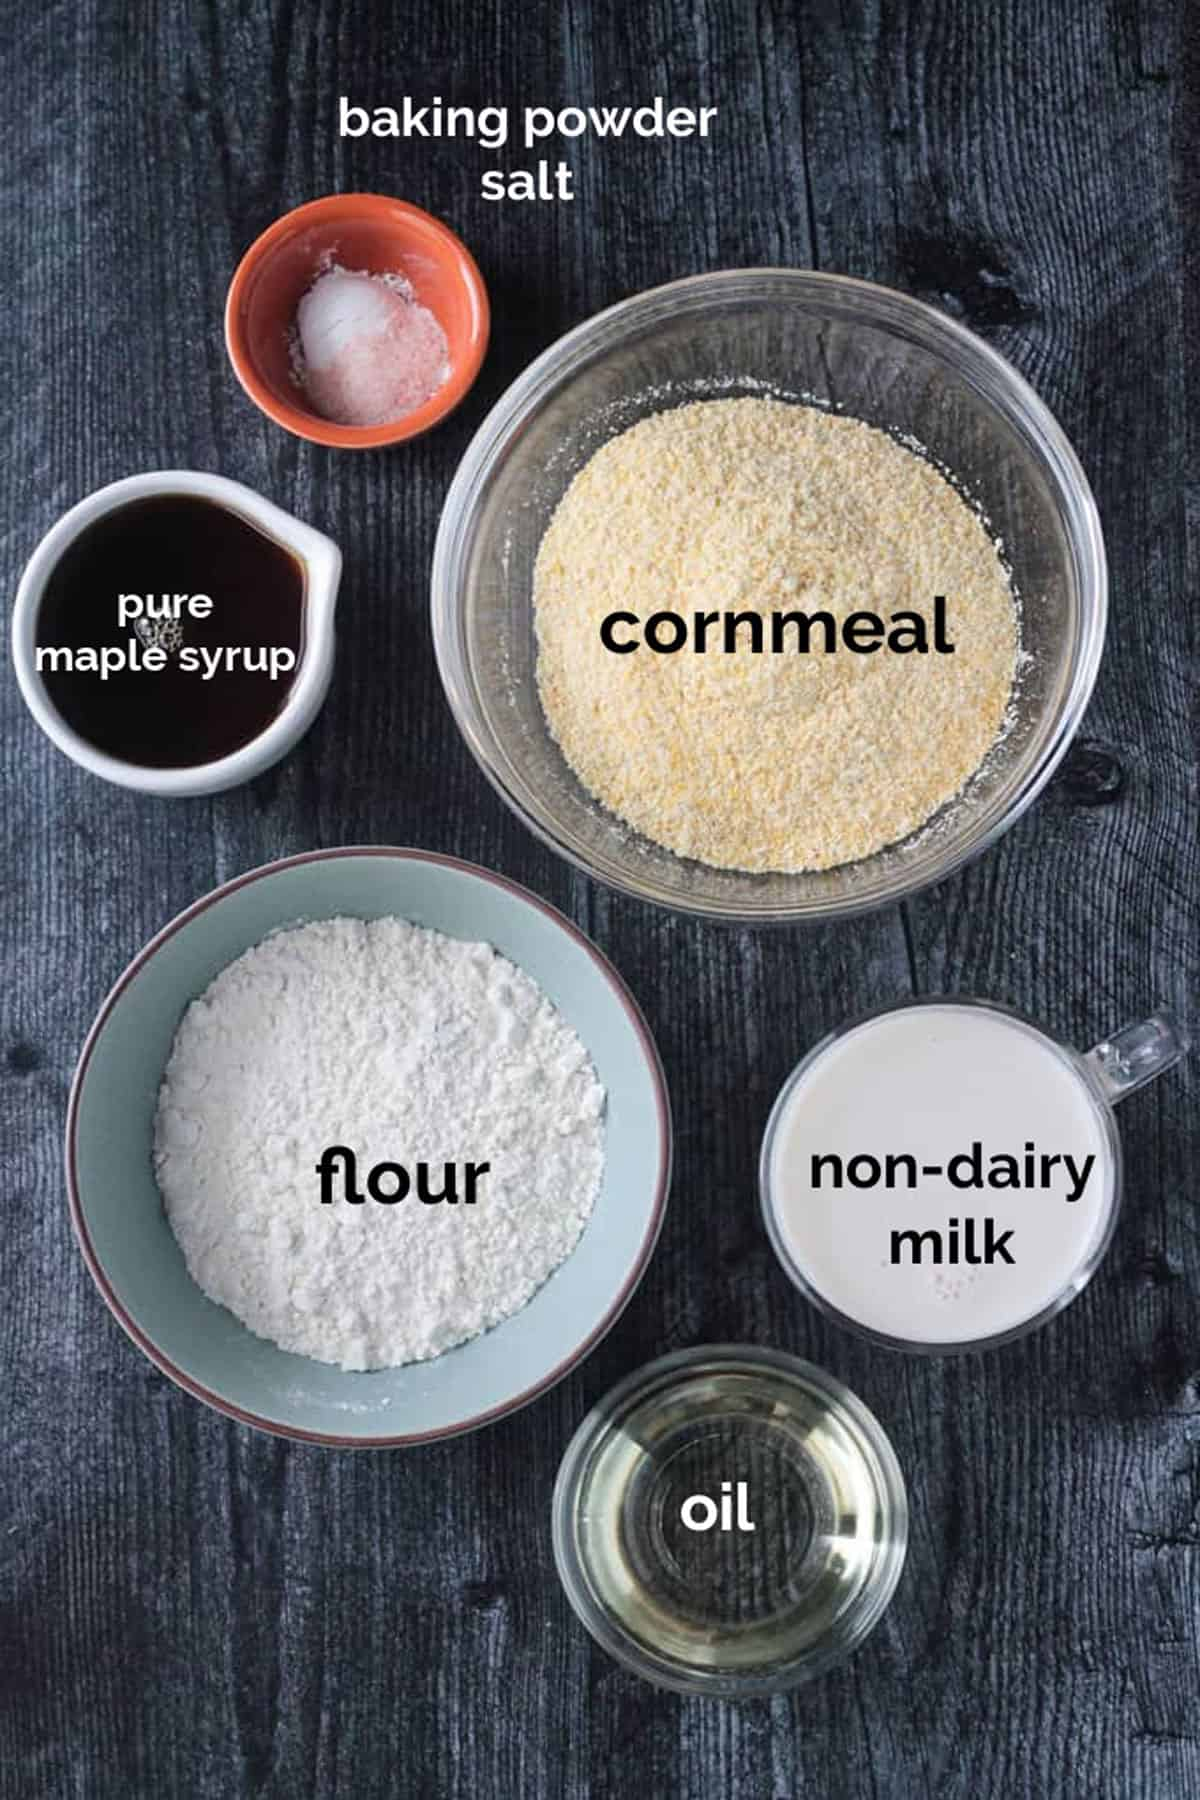 Recipe ingredients for the crust arrayed in individual bowls.